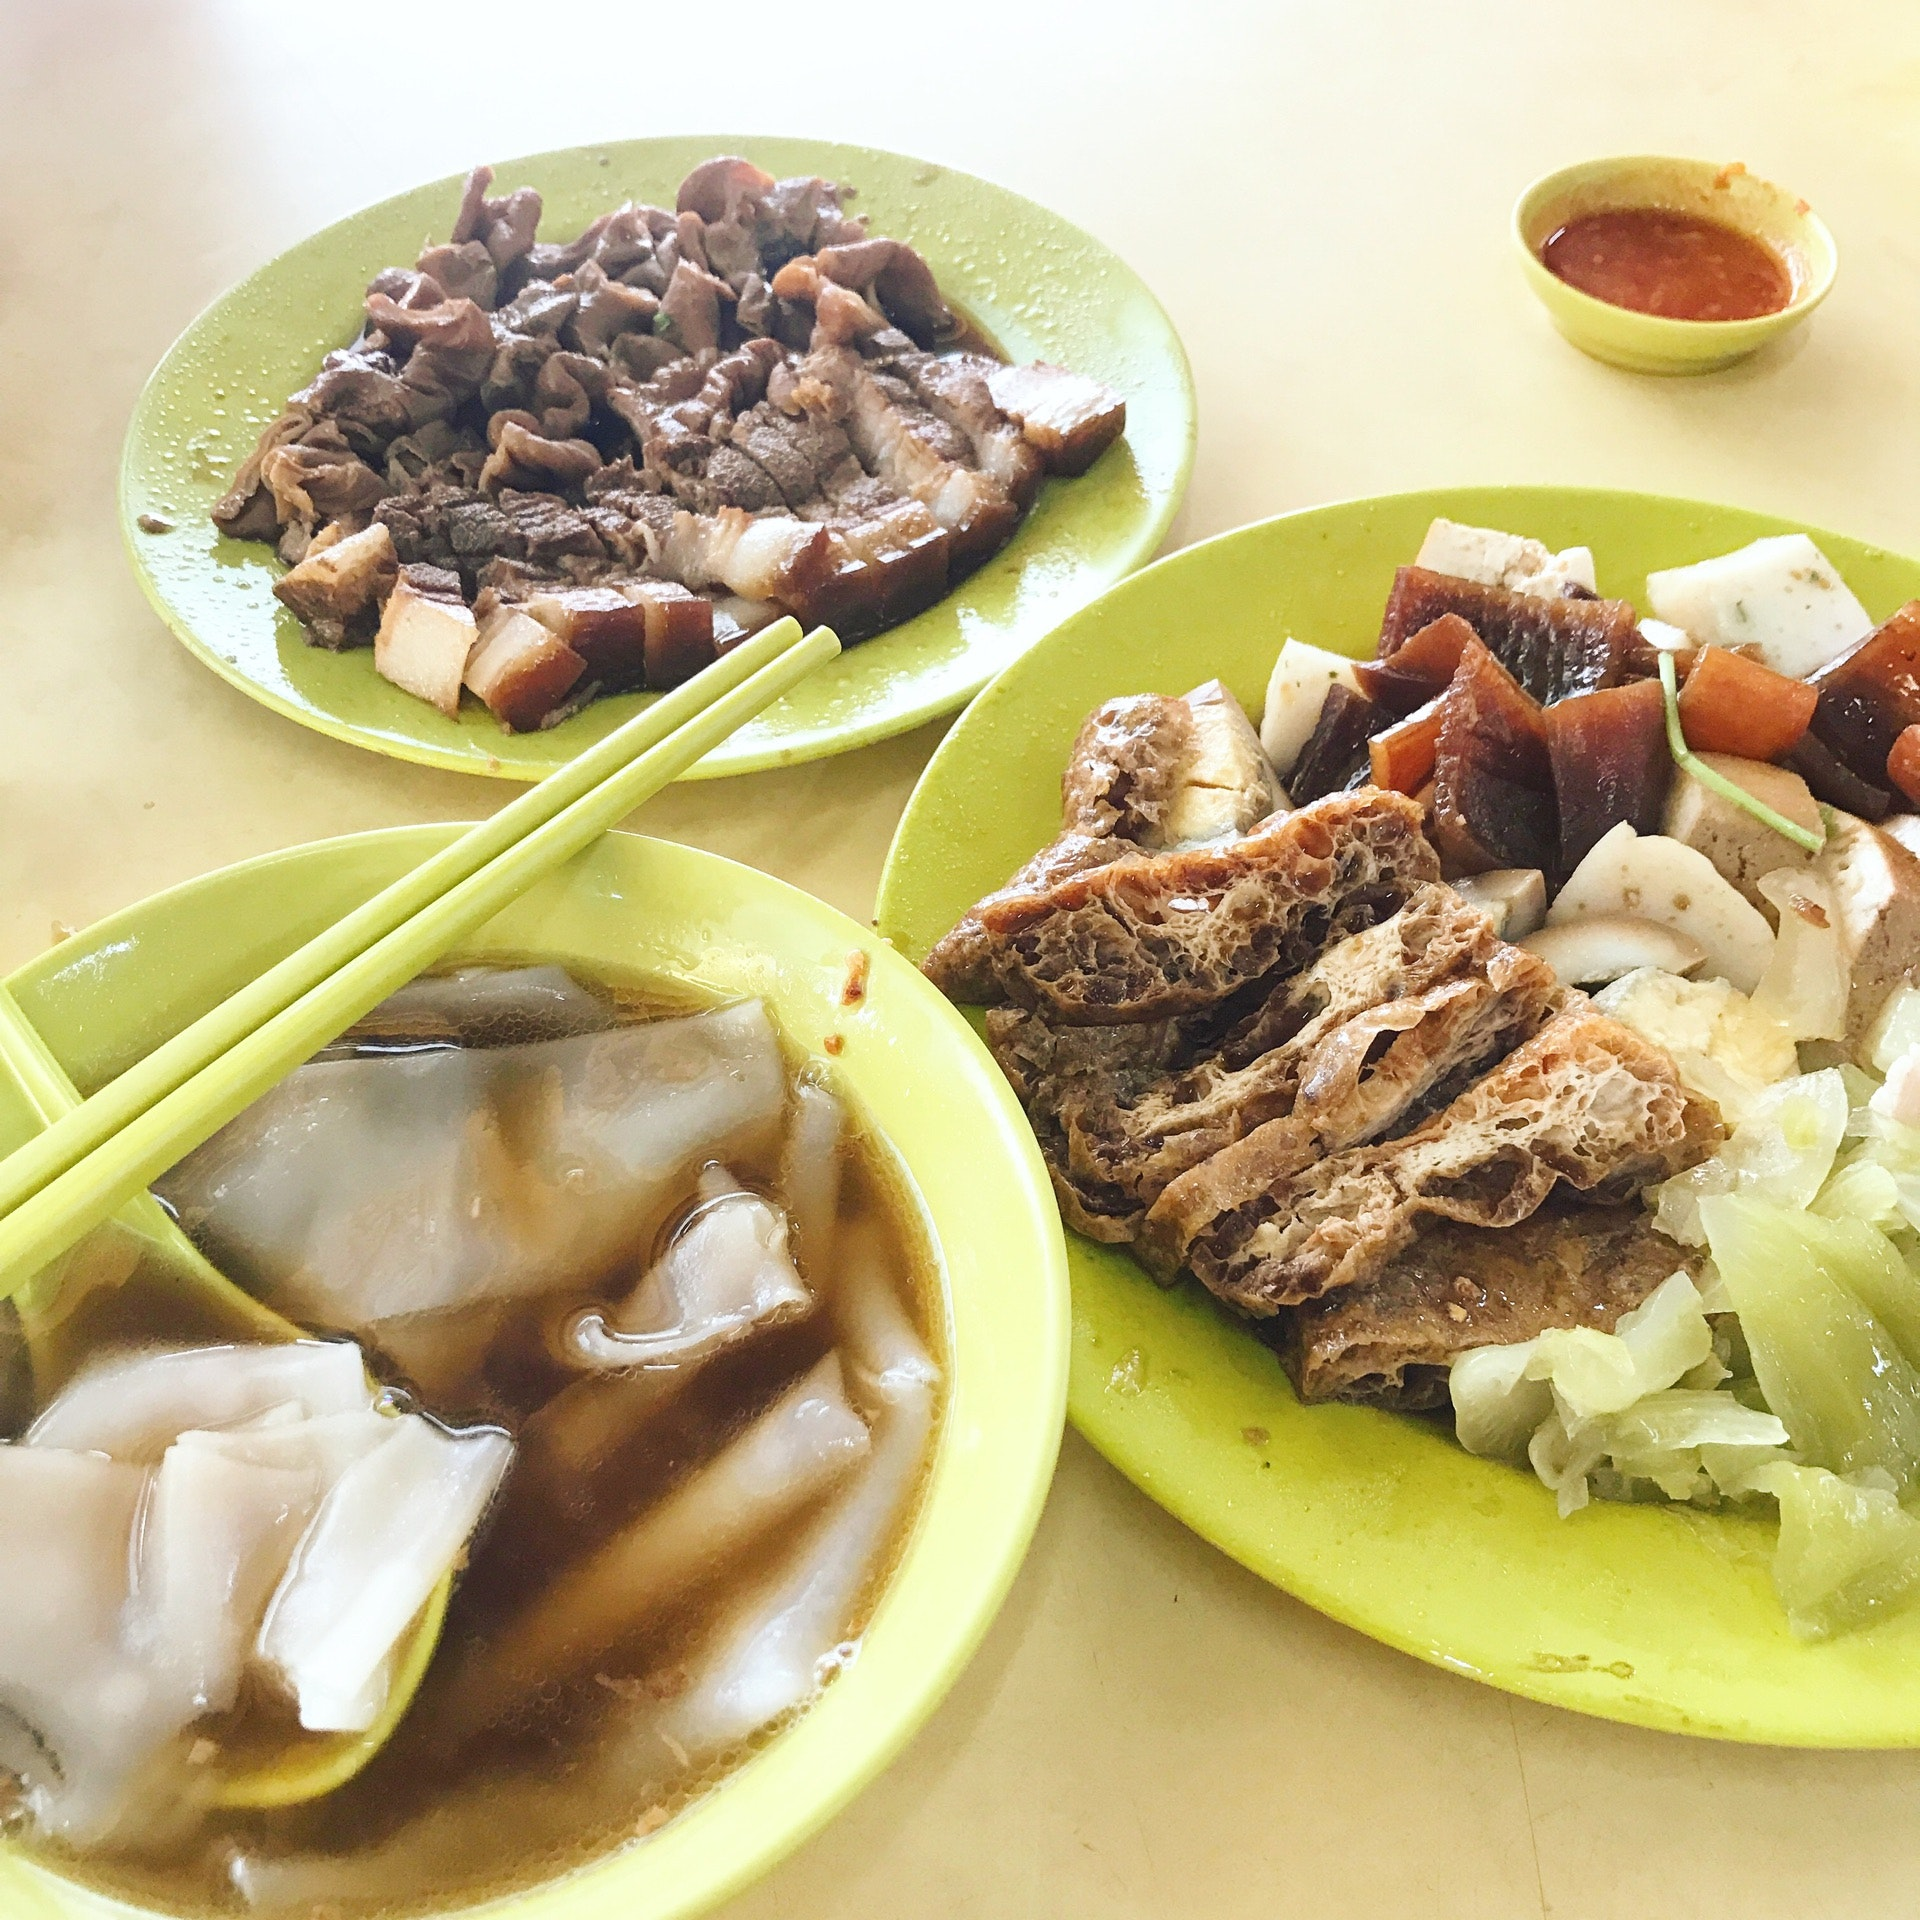 Ying Yi Kway Chap & Braised Duck (Cheng San Market & Cooked Food Centre)